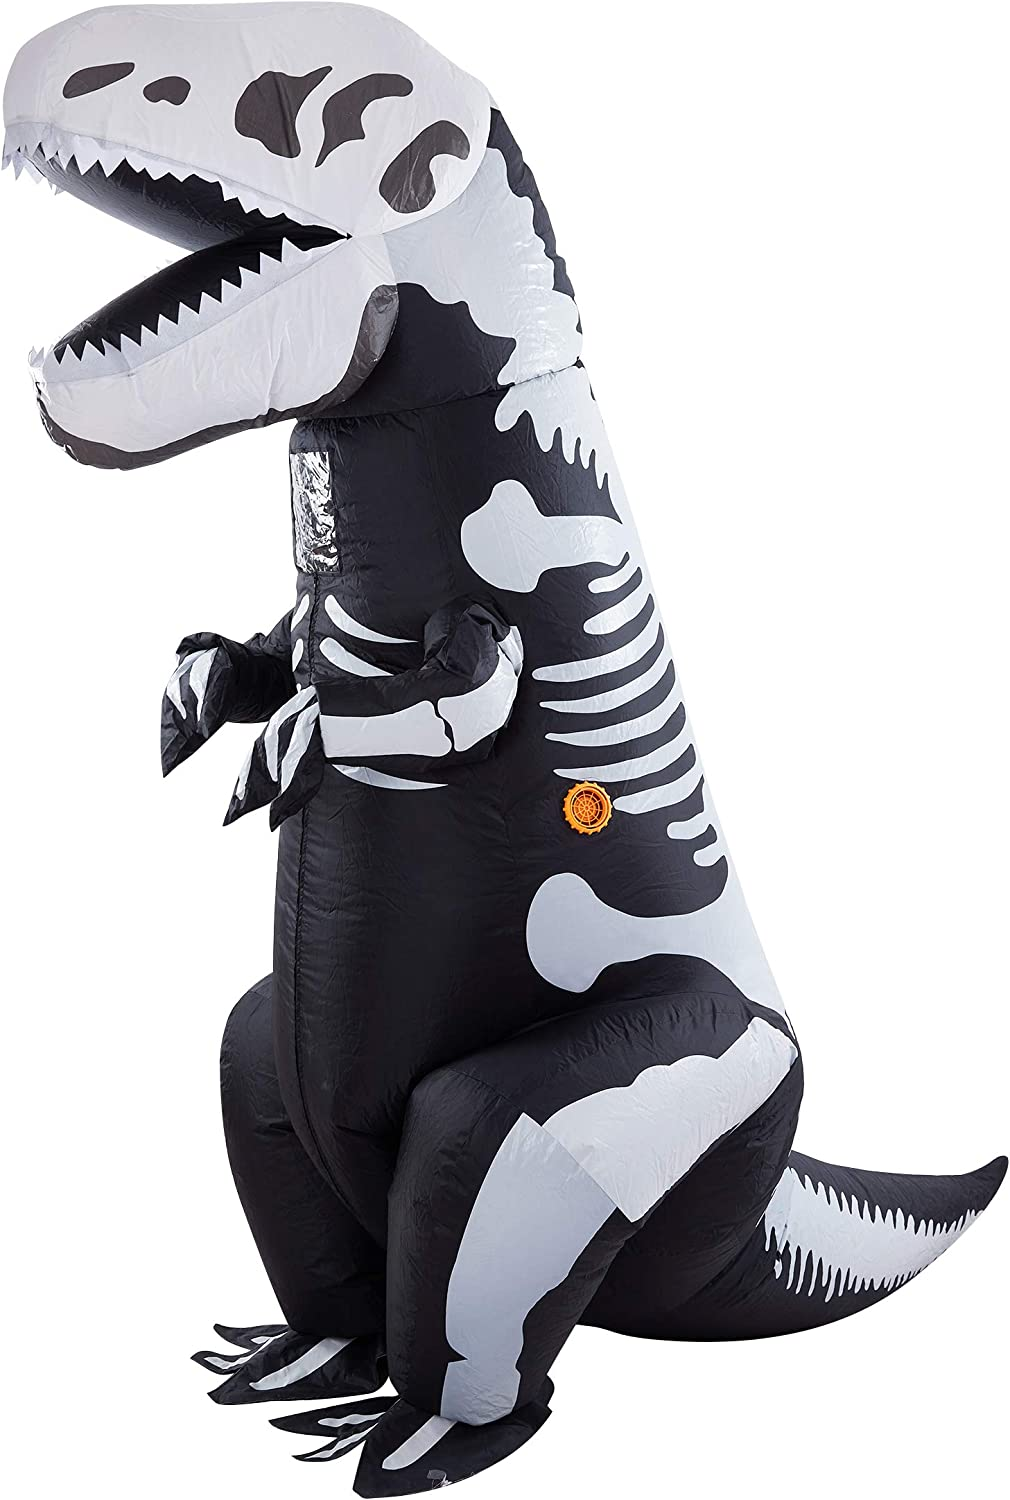 Twinkle Star 8.2FT Halloween Costume Adult Inflatable Skeleton Dinosaur, Tyrannosaurus T-Rex Halloween Decorations Party Fancy Dress Funny Cosplay Jumpsuit White